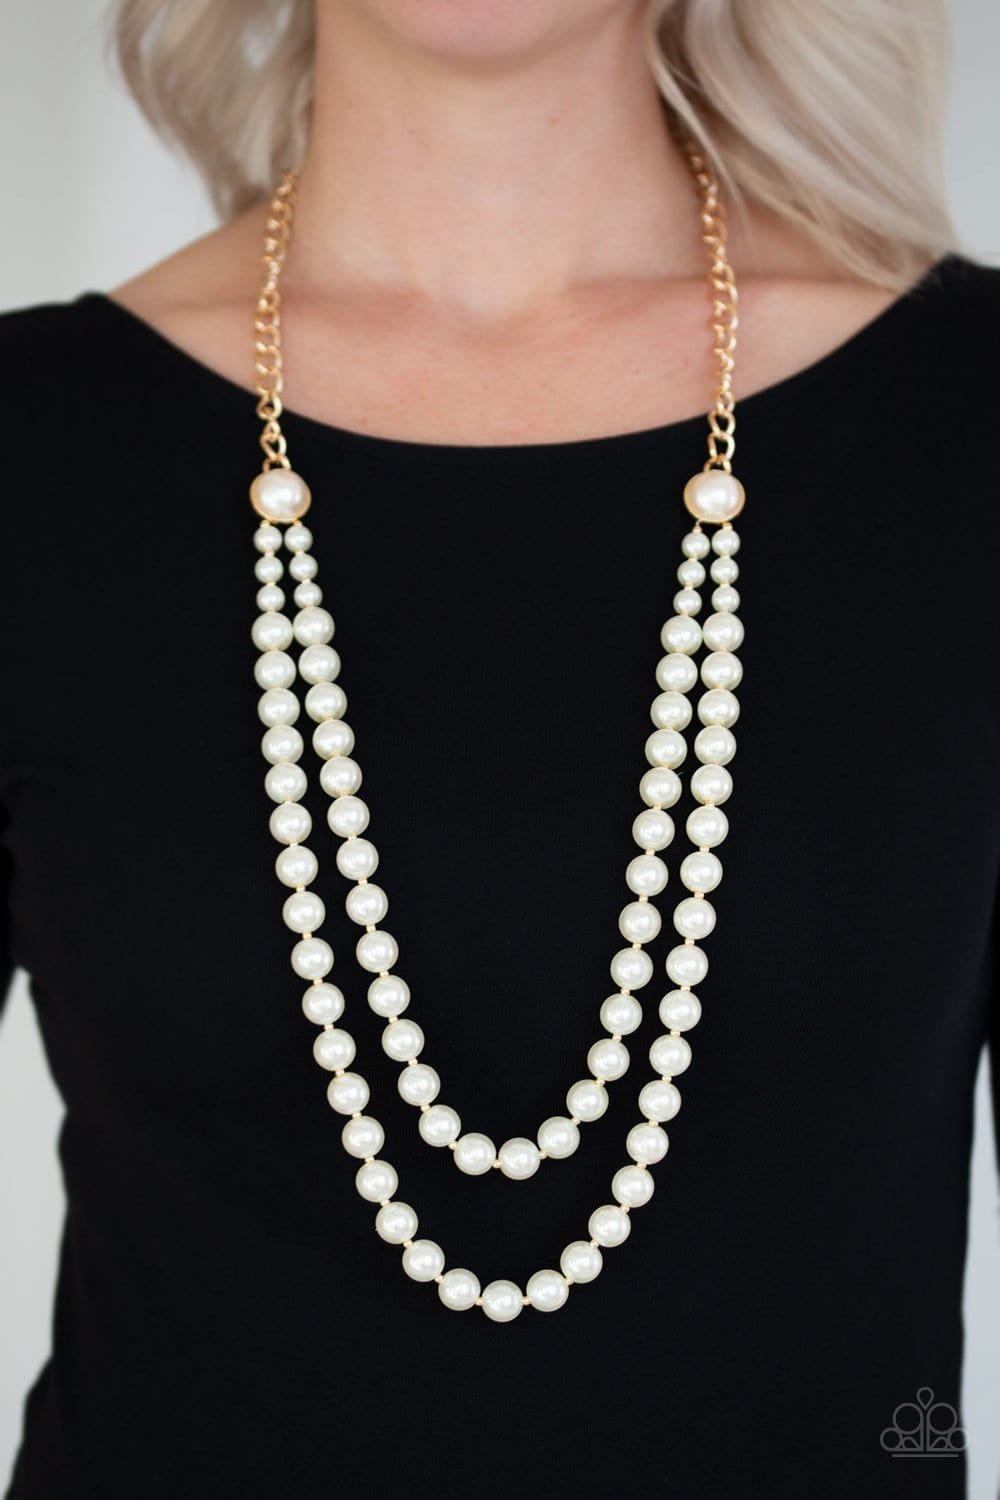 Endless Elegance - Gold: Paparazzi Accessories - Jewels N' Thingz Boutique